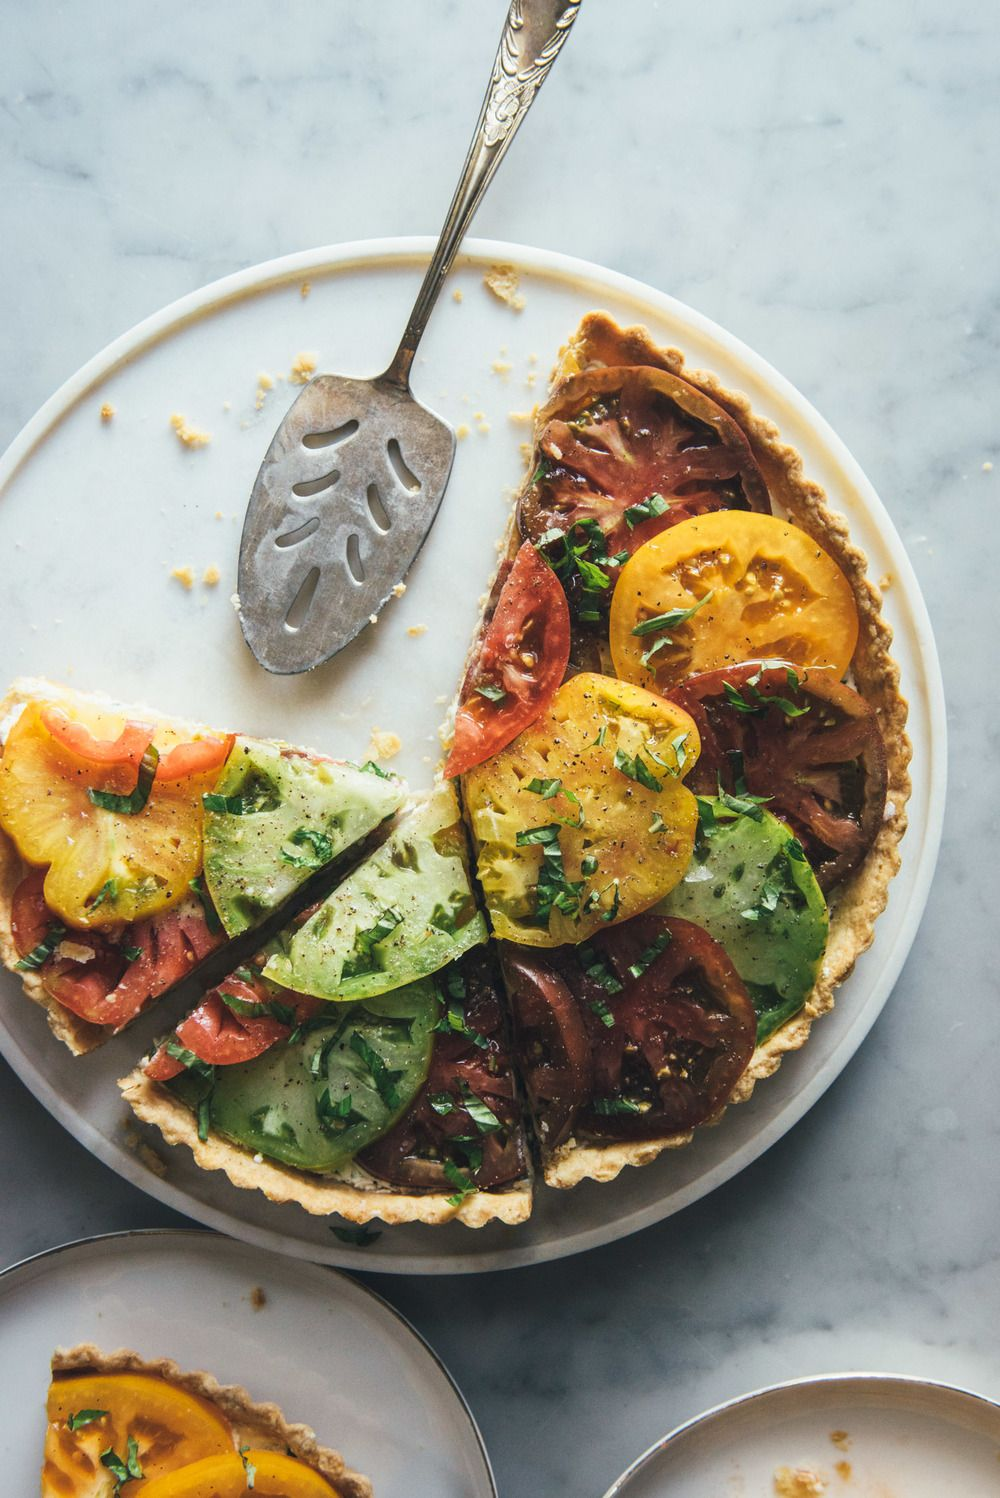 Tomato Tart with a Scallion Goat Cheese Filling | Cocina verde ...